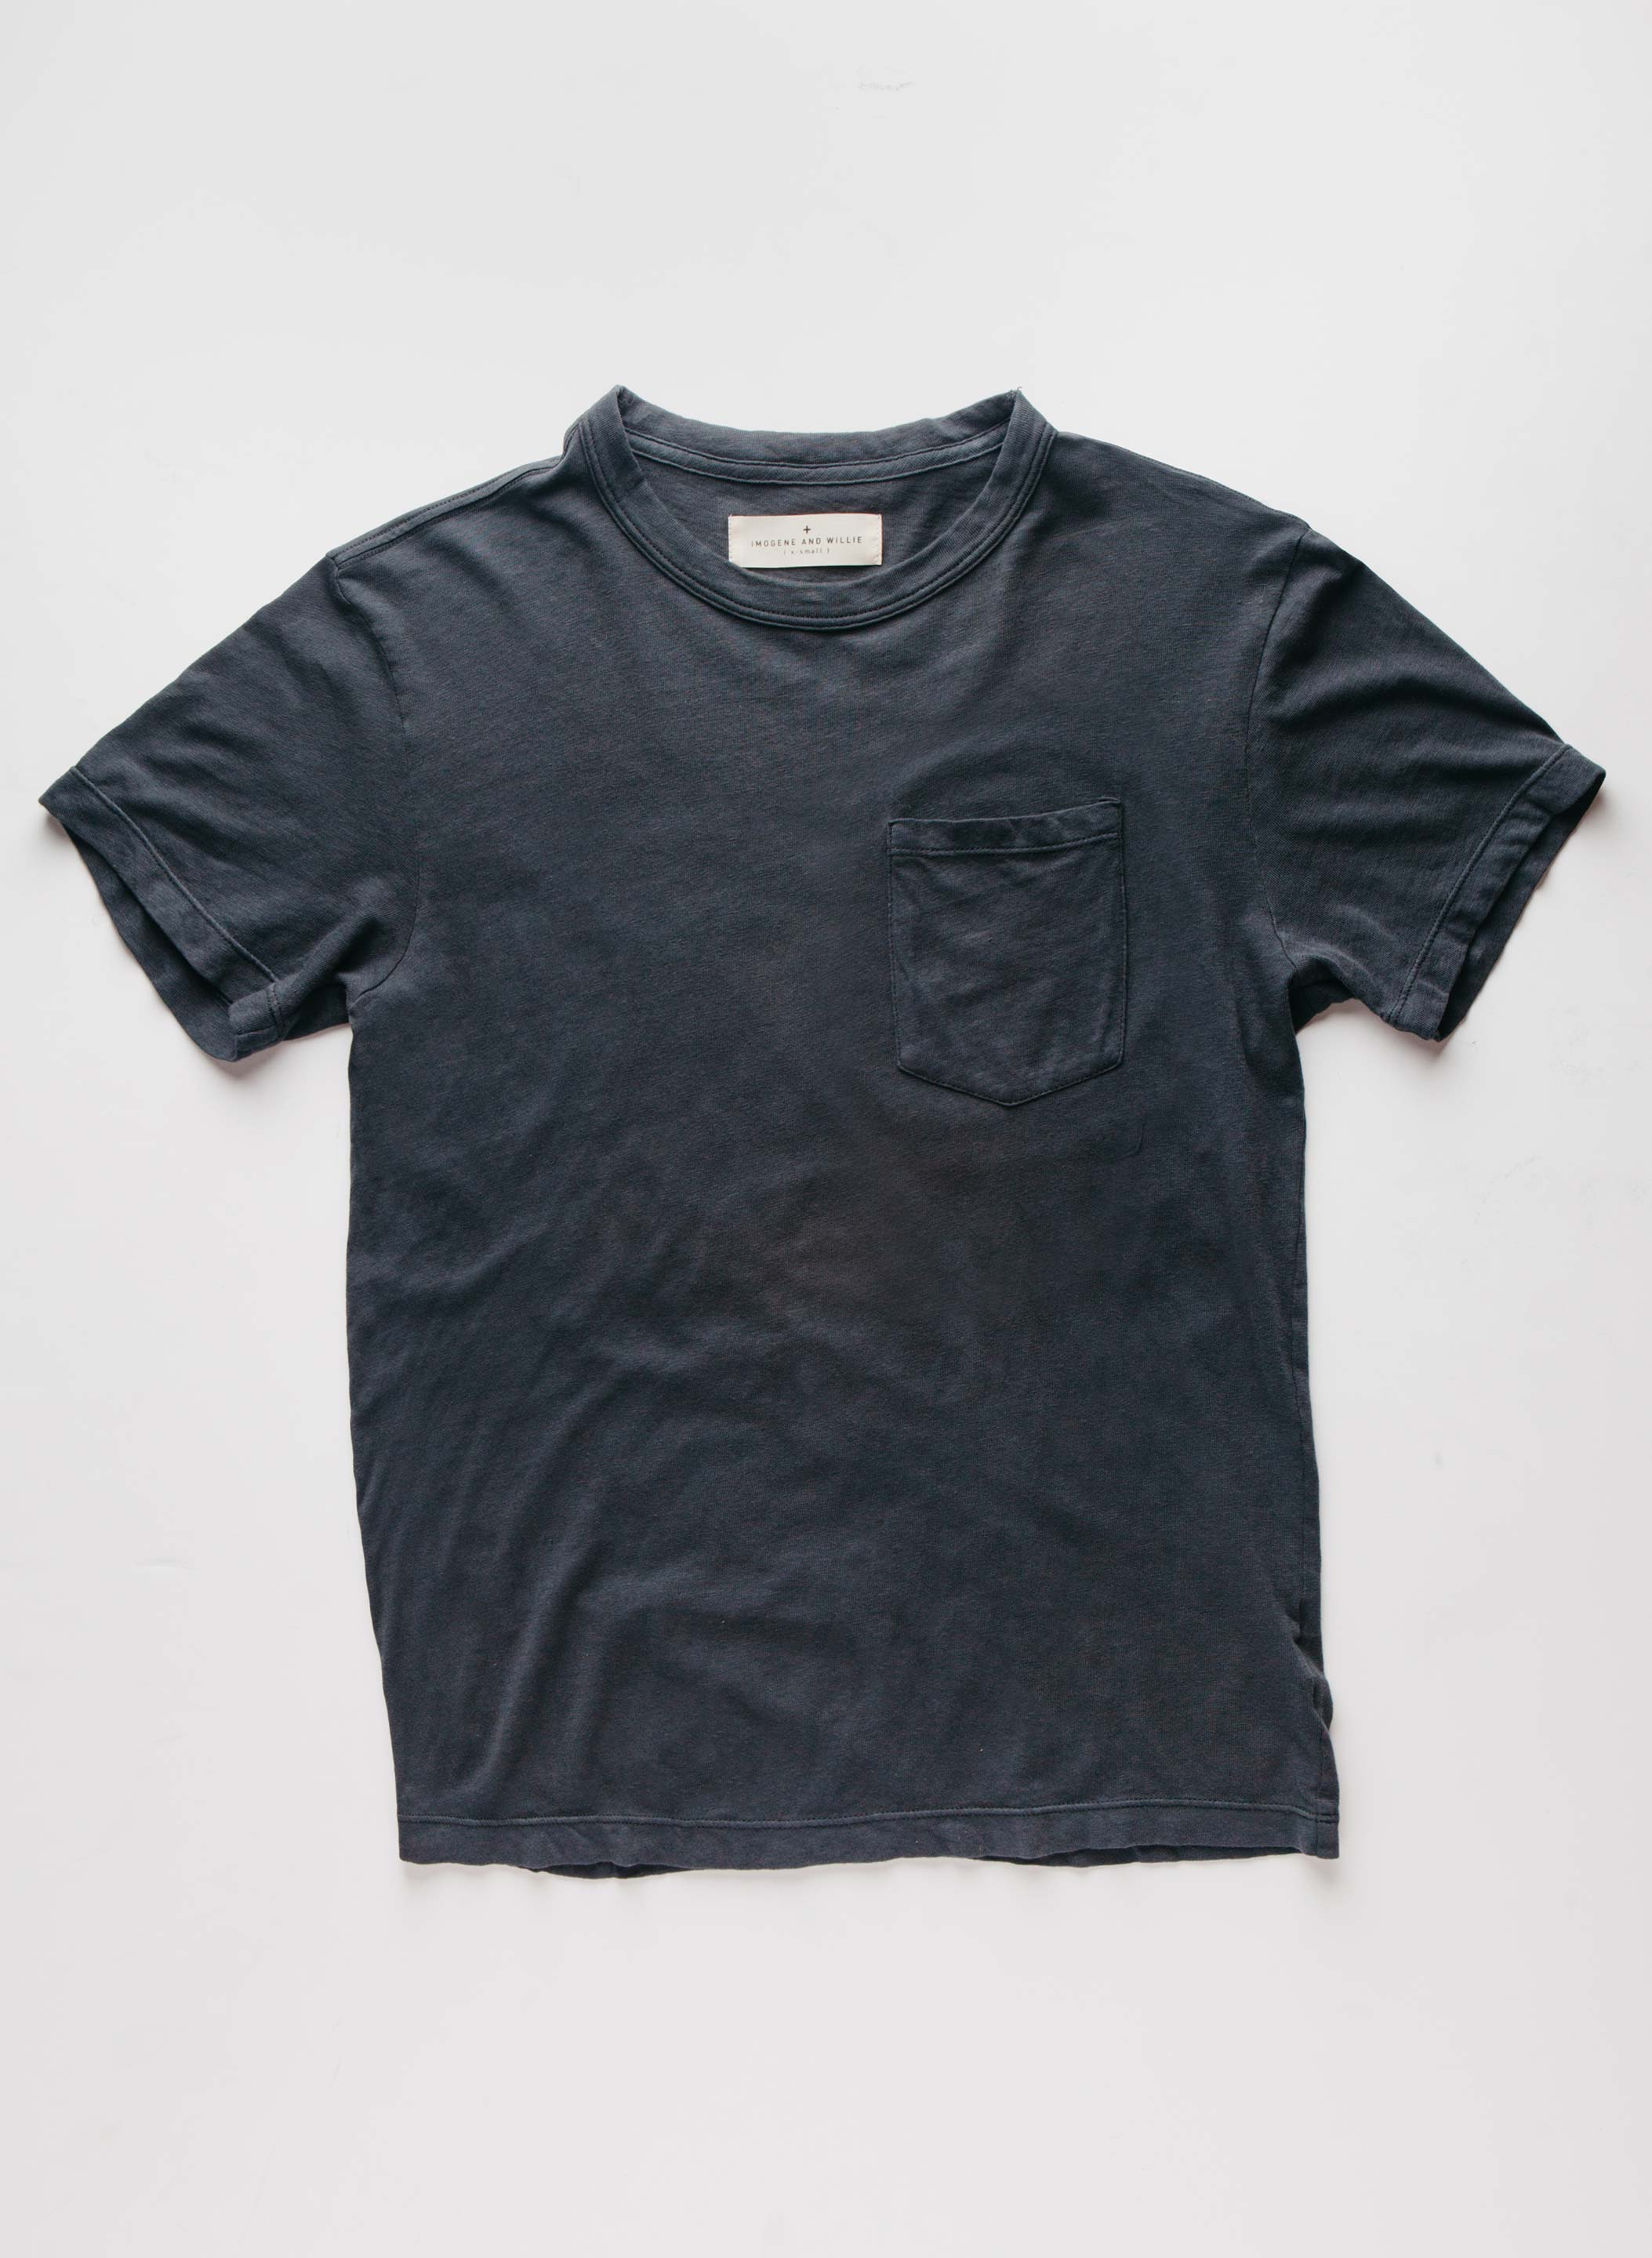 imogene + willie - graphite knit pocket tee